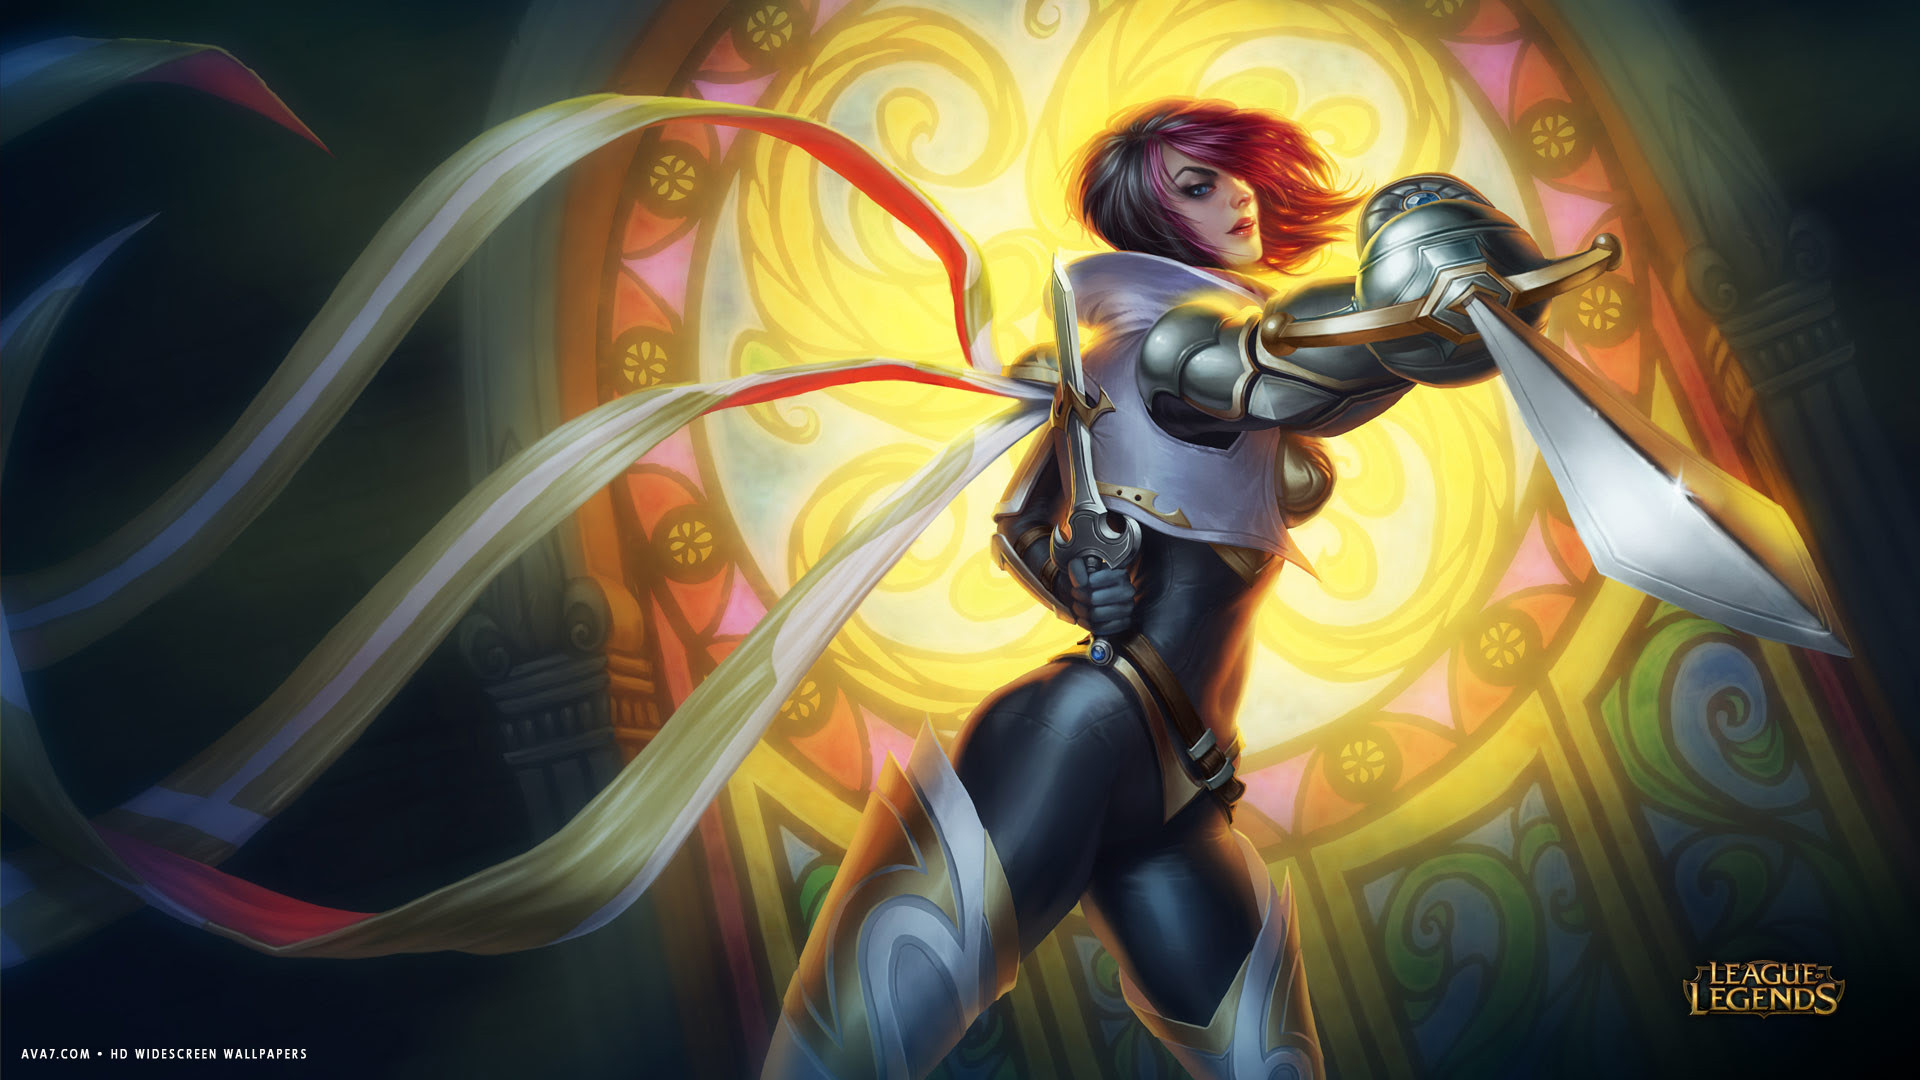 League Of Legends Game Lol Fiora Girl Sword Hd Widescreen